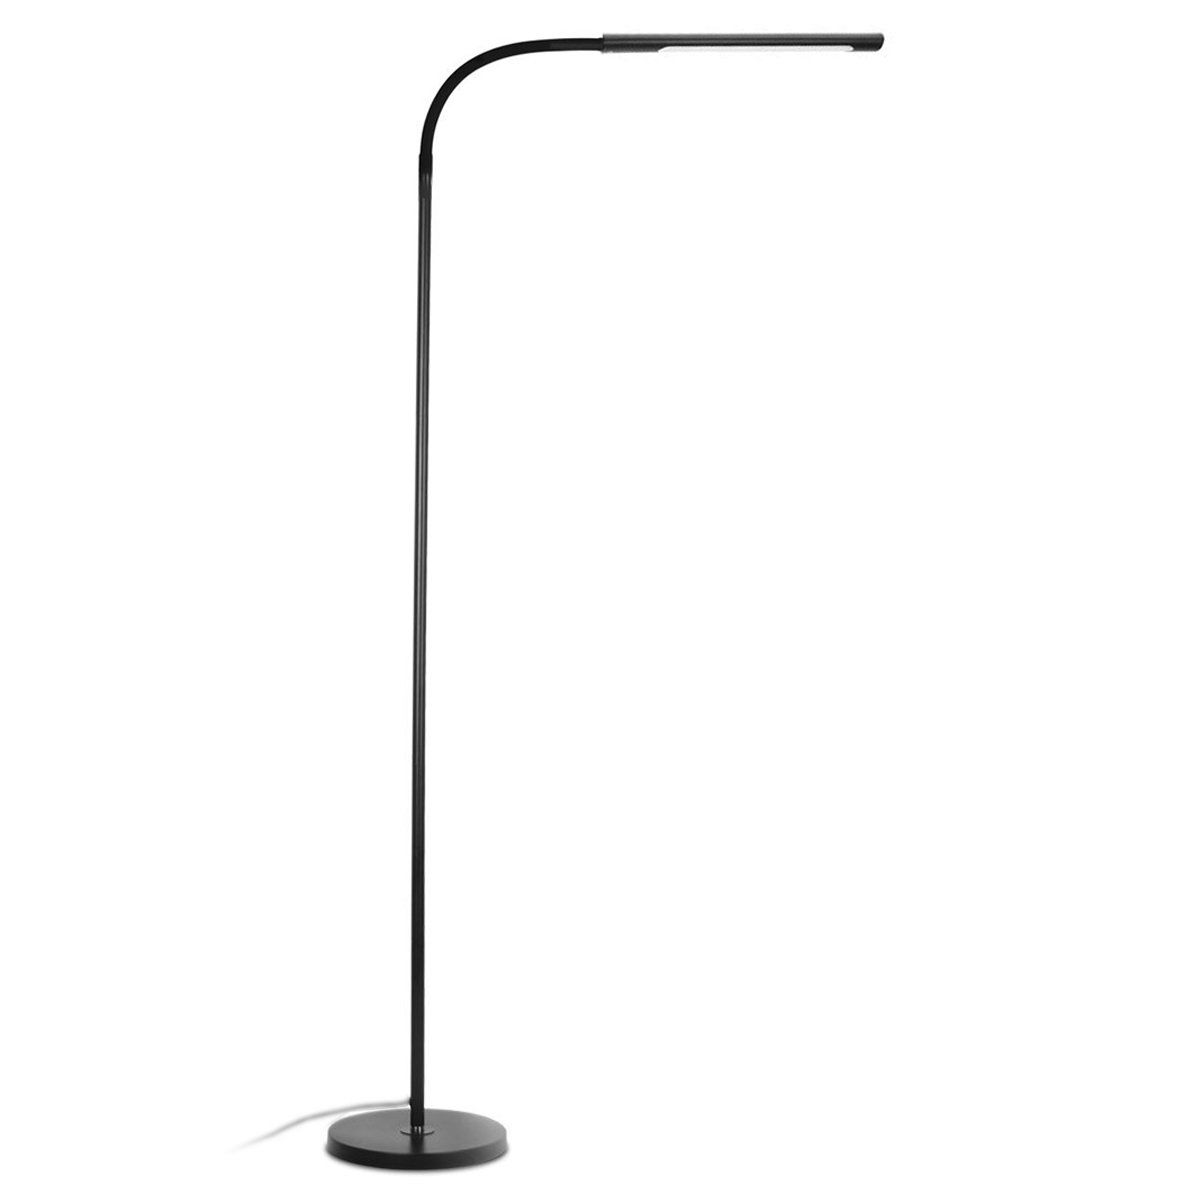 Byingo 12W Dimmable Touch Sensor Switch LED Reading Floor Lamp - Modern Simplicity Style - 4 Color Modes Stepless Dimming - Fully Adjustable Long Gooseneck, for Sofa/Desk Reading, Living Room, Bedroom